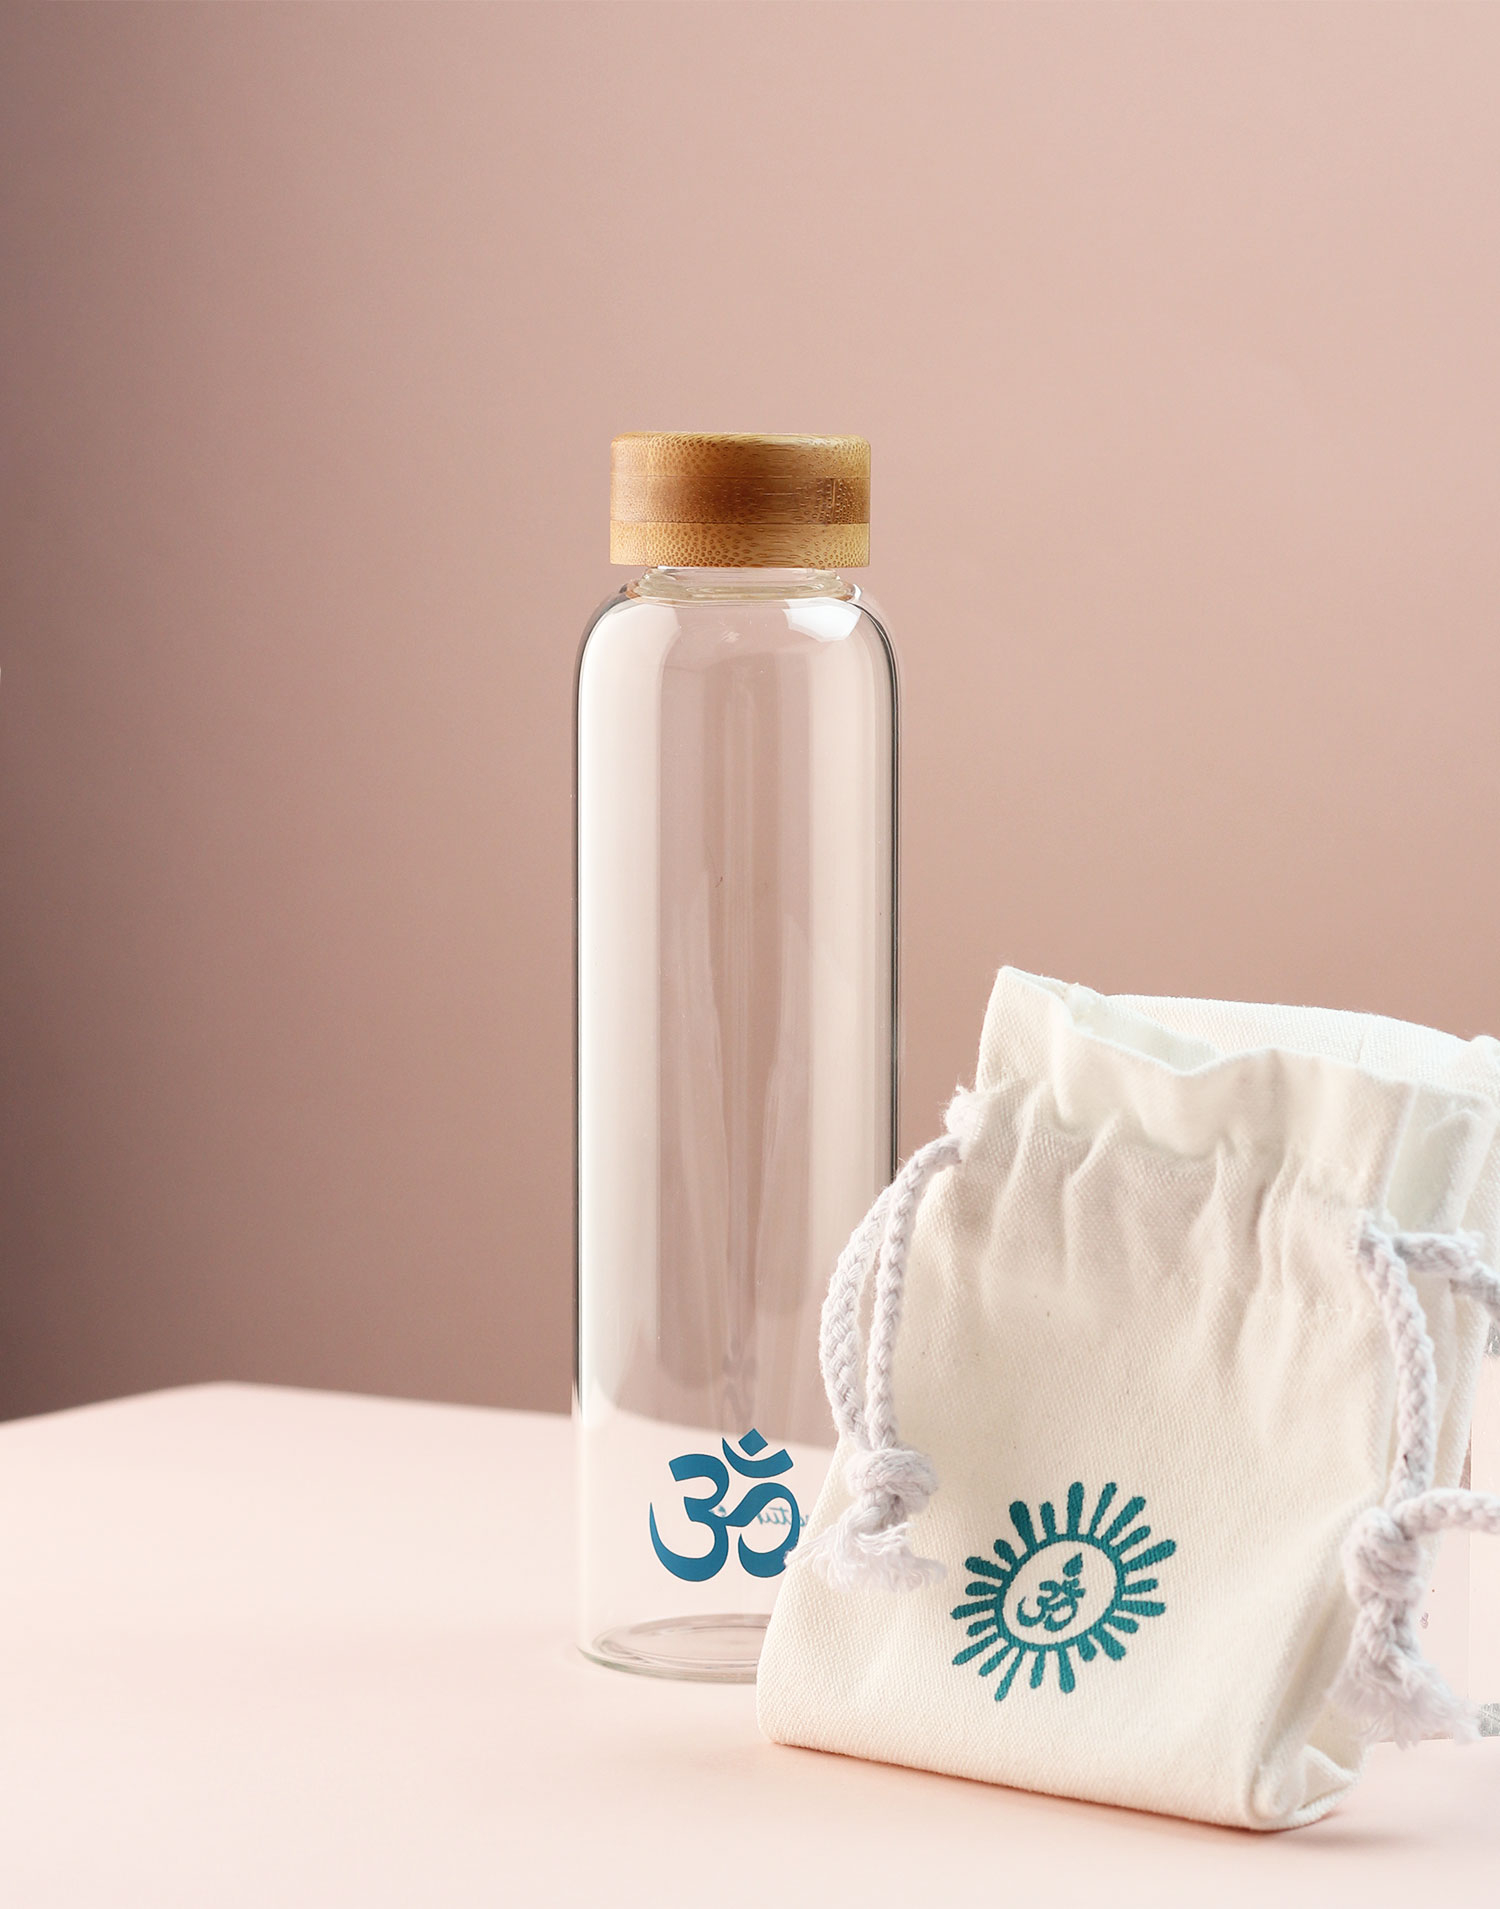 Om bottle with bag